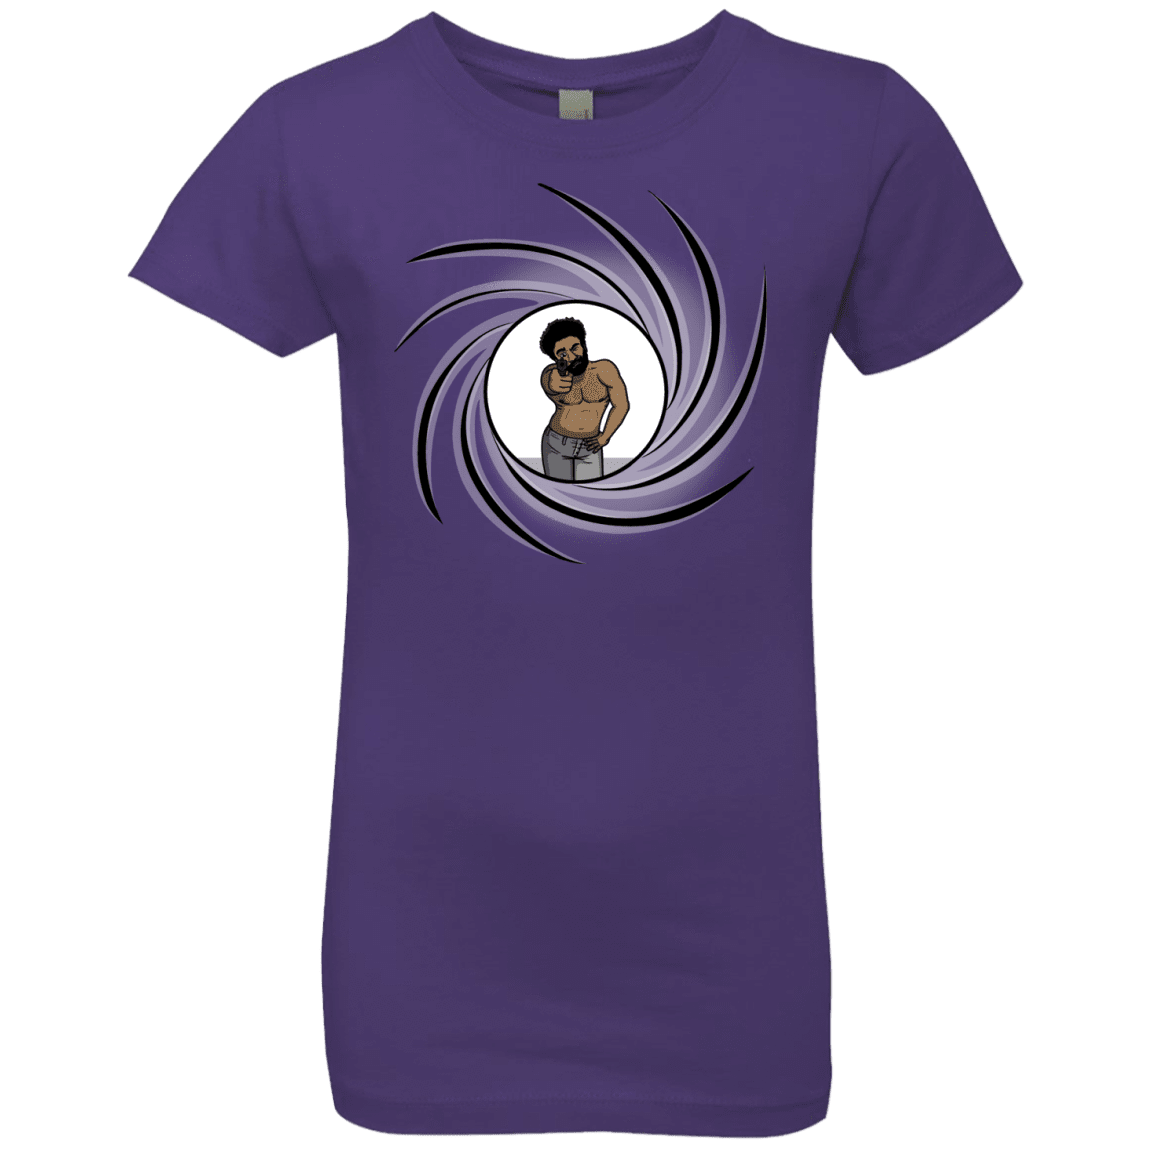 T-Shirts Purple Rush / YXS Agent Gambino Girls Premium T-Shirt